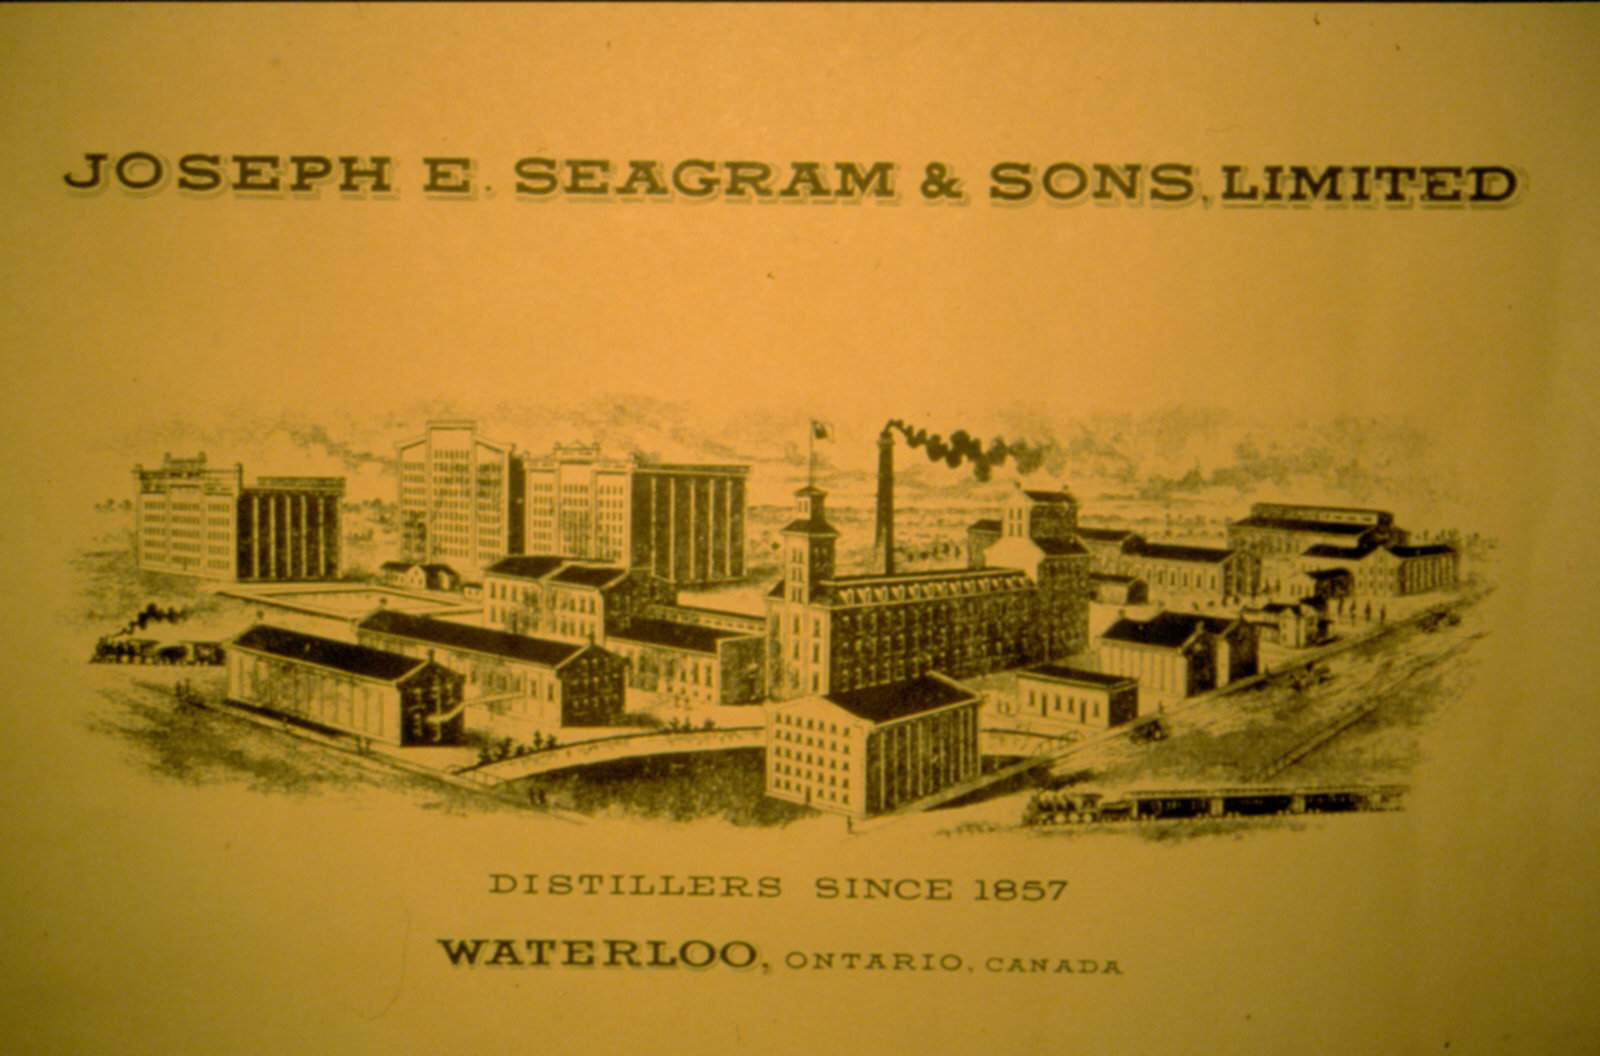 Publicité de Joseph E. Seagram and Sons Limited